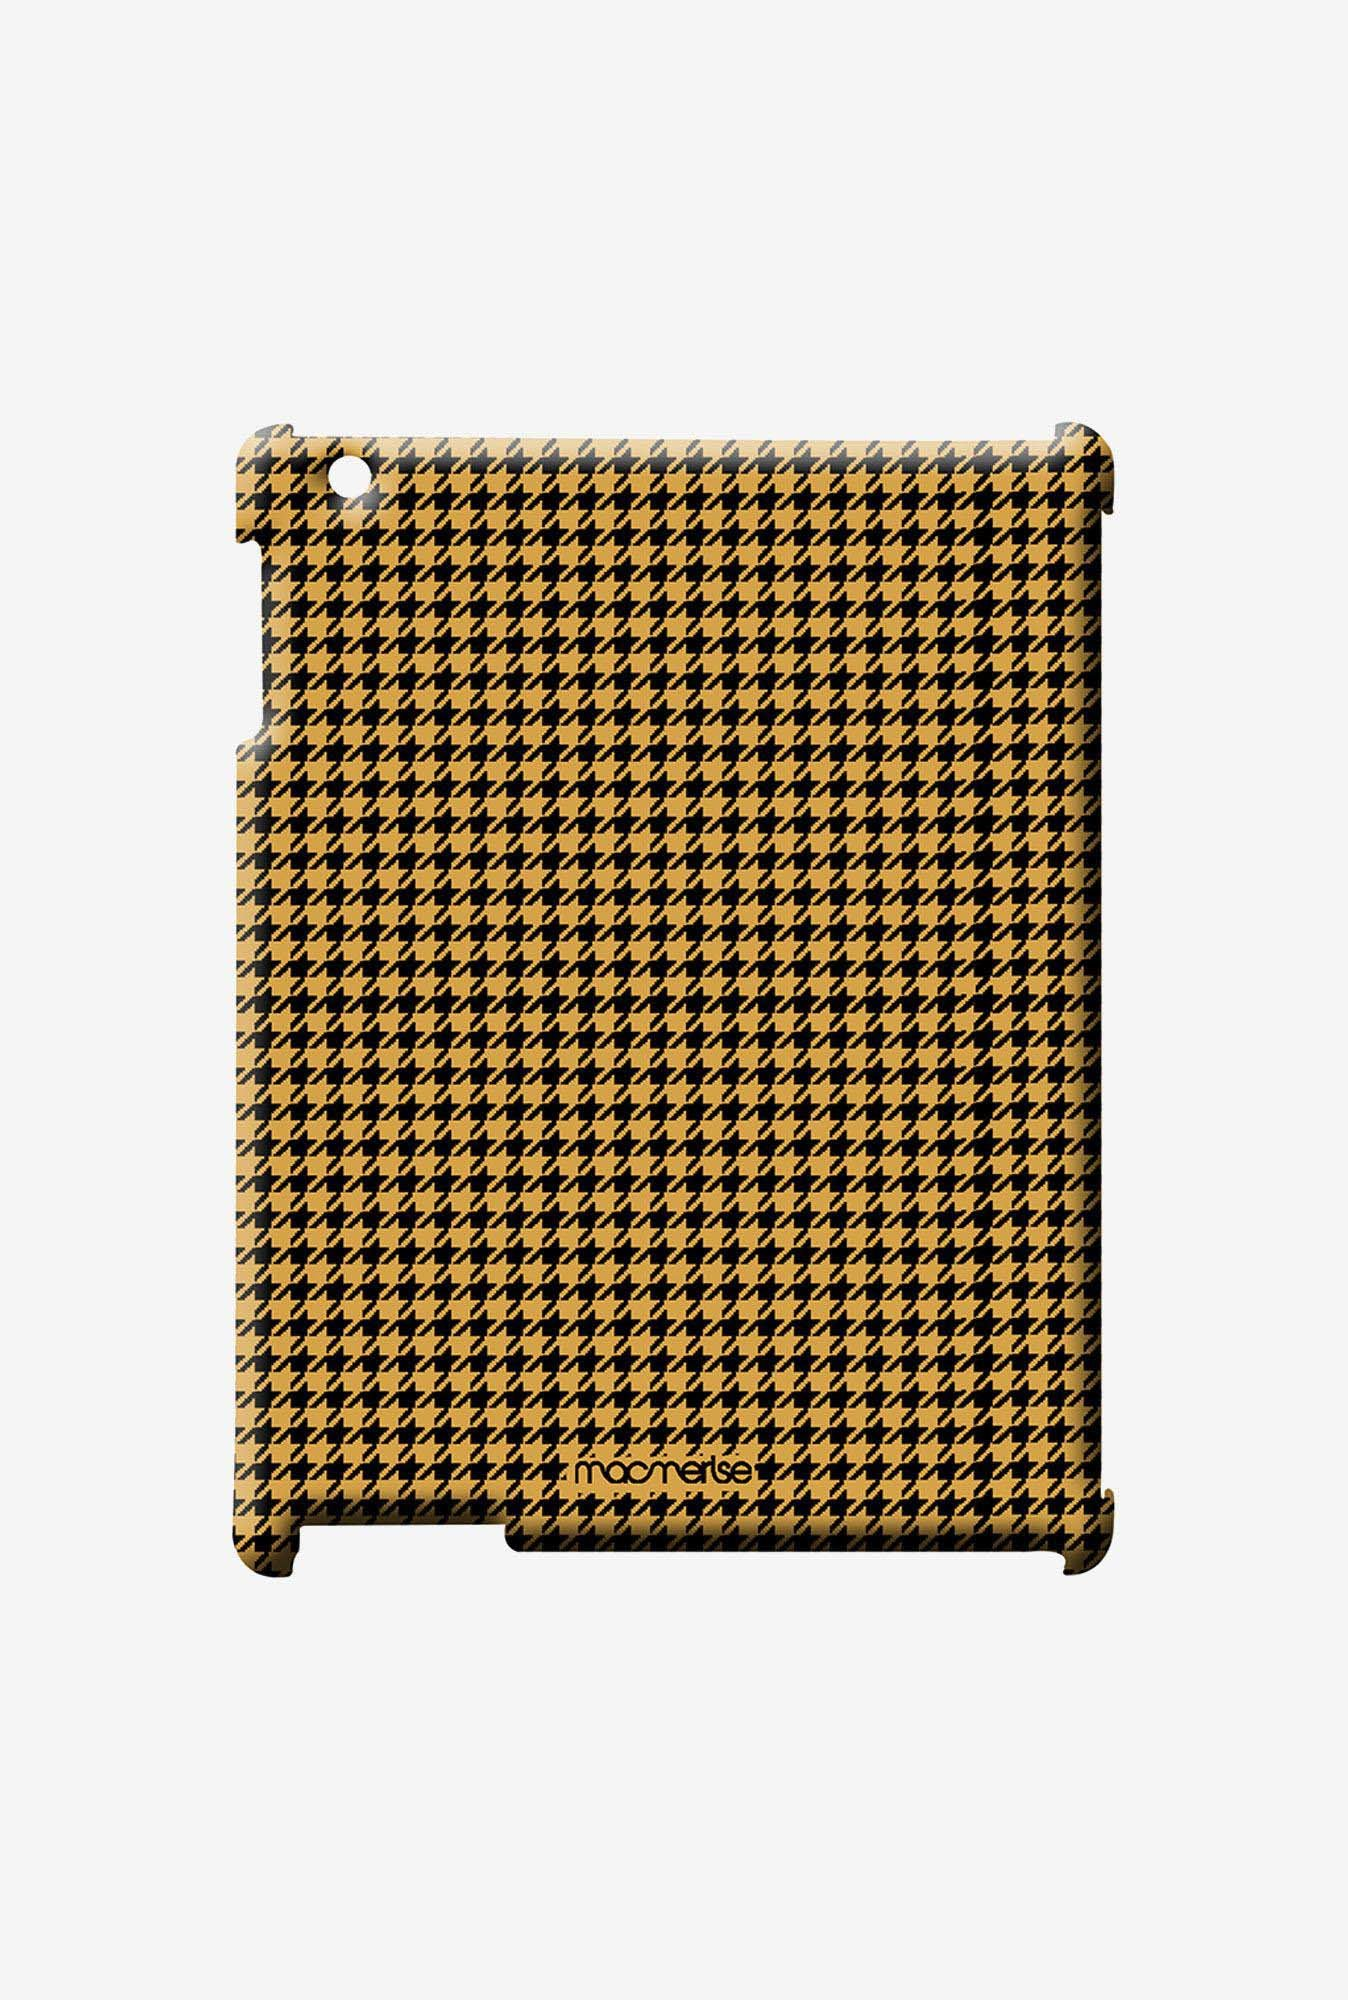 Macmerise Hounds Sequence Pro Case for iPad Air 2